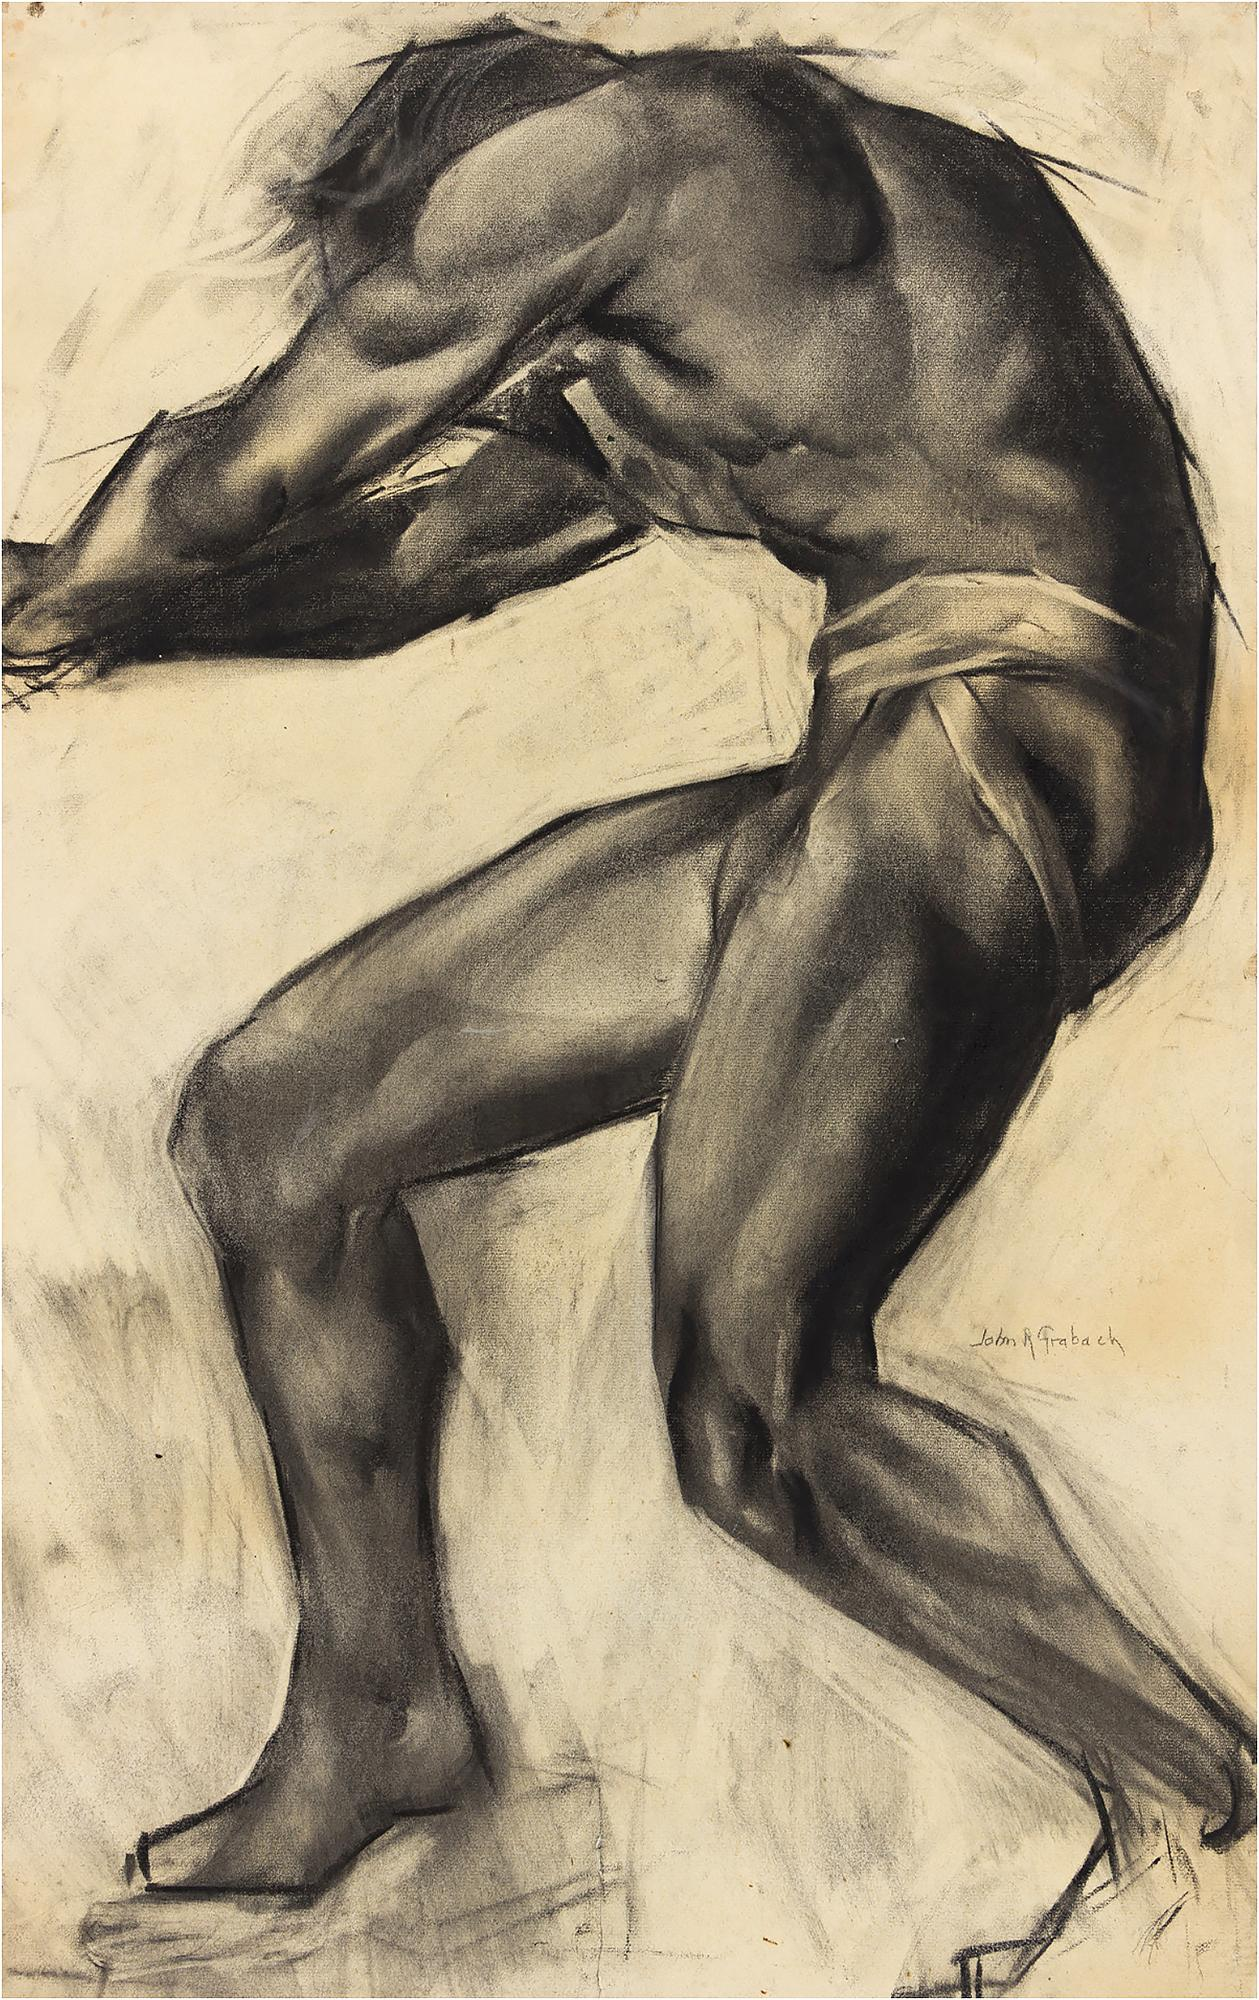 Muscular Male Nude with Bulging Muscles  Art Deco